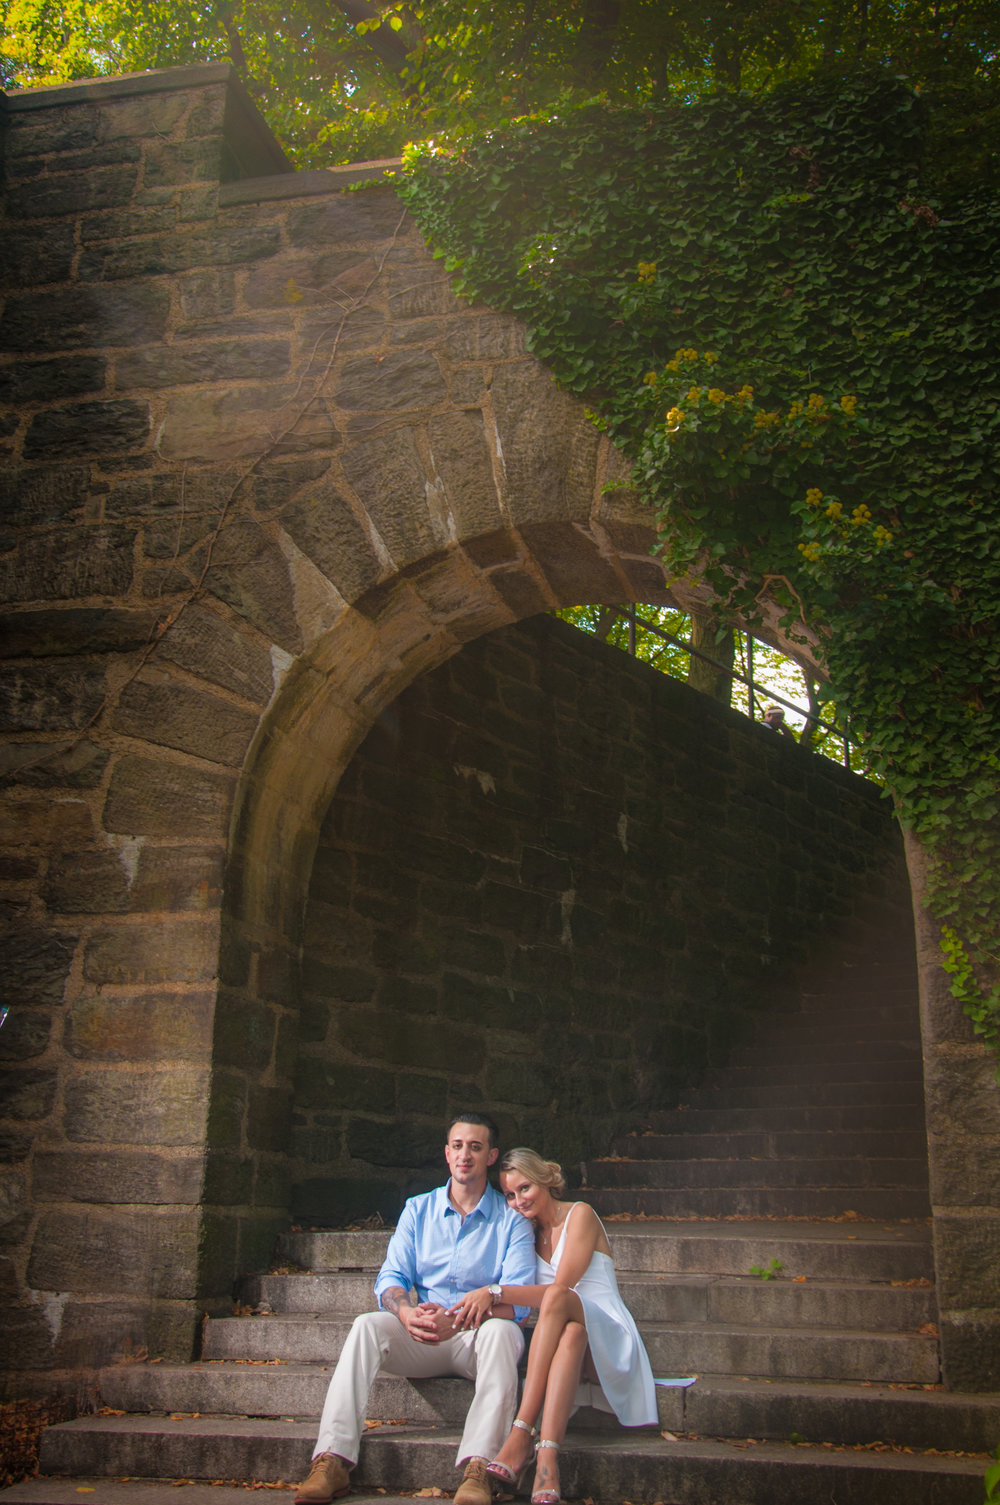 CArrieWestonStudios_NY_Portrait_Wedding_Photography_Northport_JoeandSarah-13.jpg